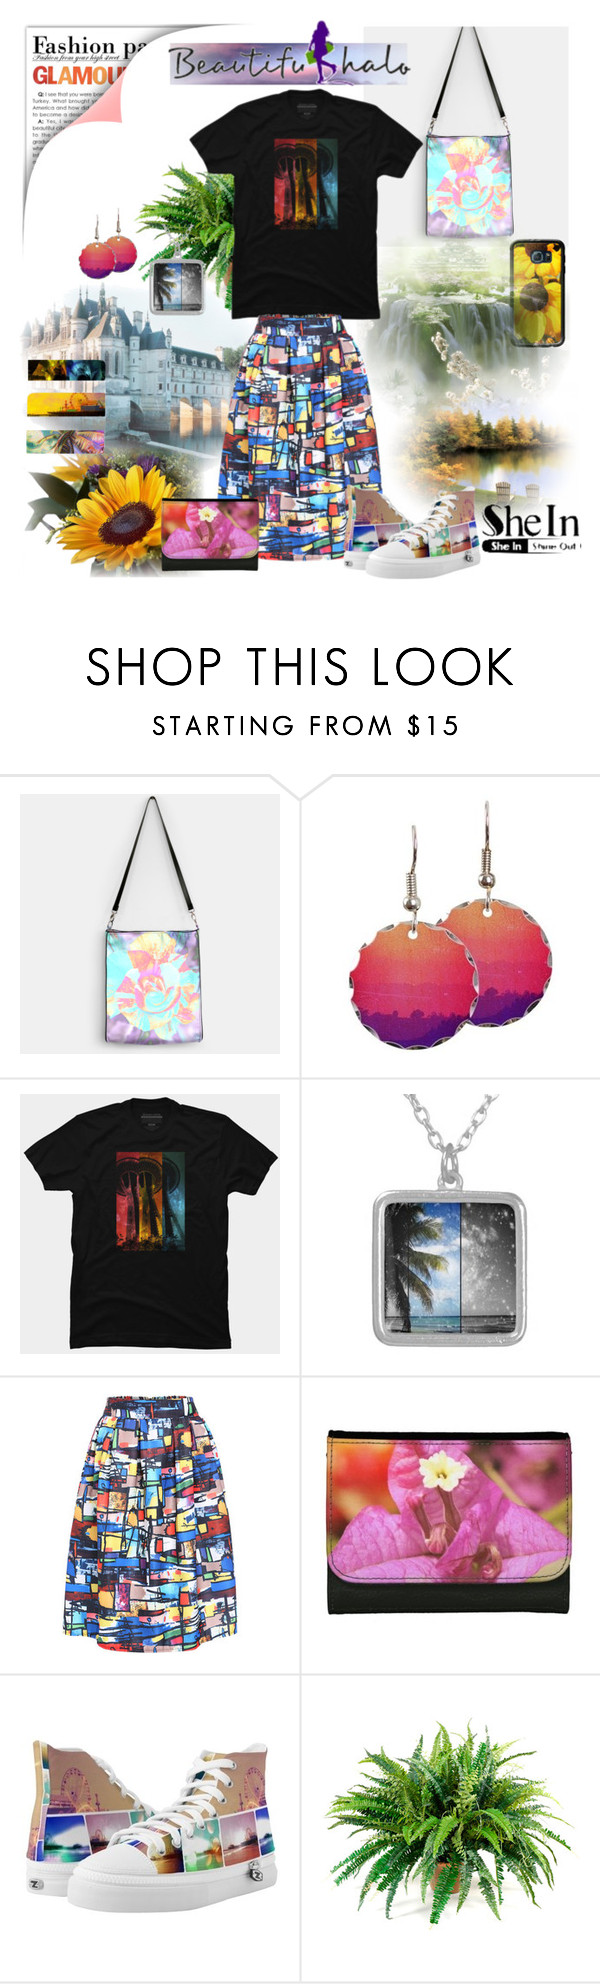 Add more color to your life! by stine1online on Polyvore: Add more color to your life with this SheIn multicolor print skirt matched up with prismatic t-shirt, shoes, jewelry, smartphone case and accessories designed by Christine aka stine1. This is anything but boring fashion!